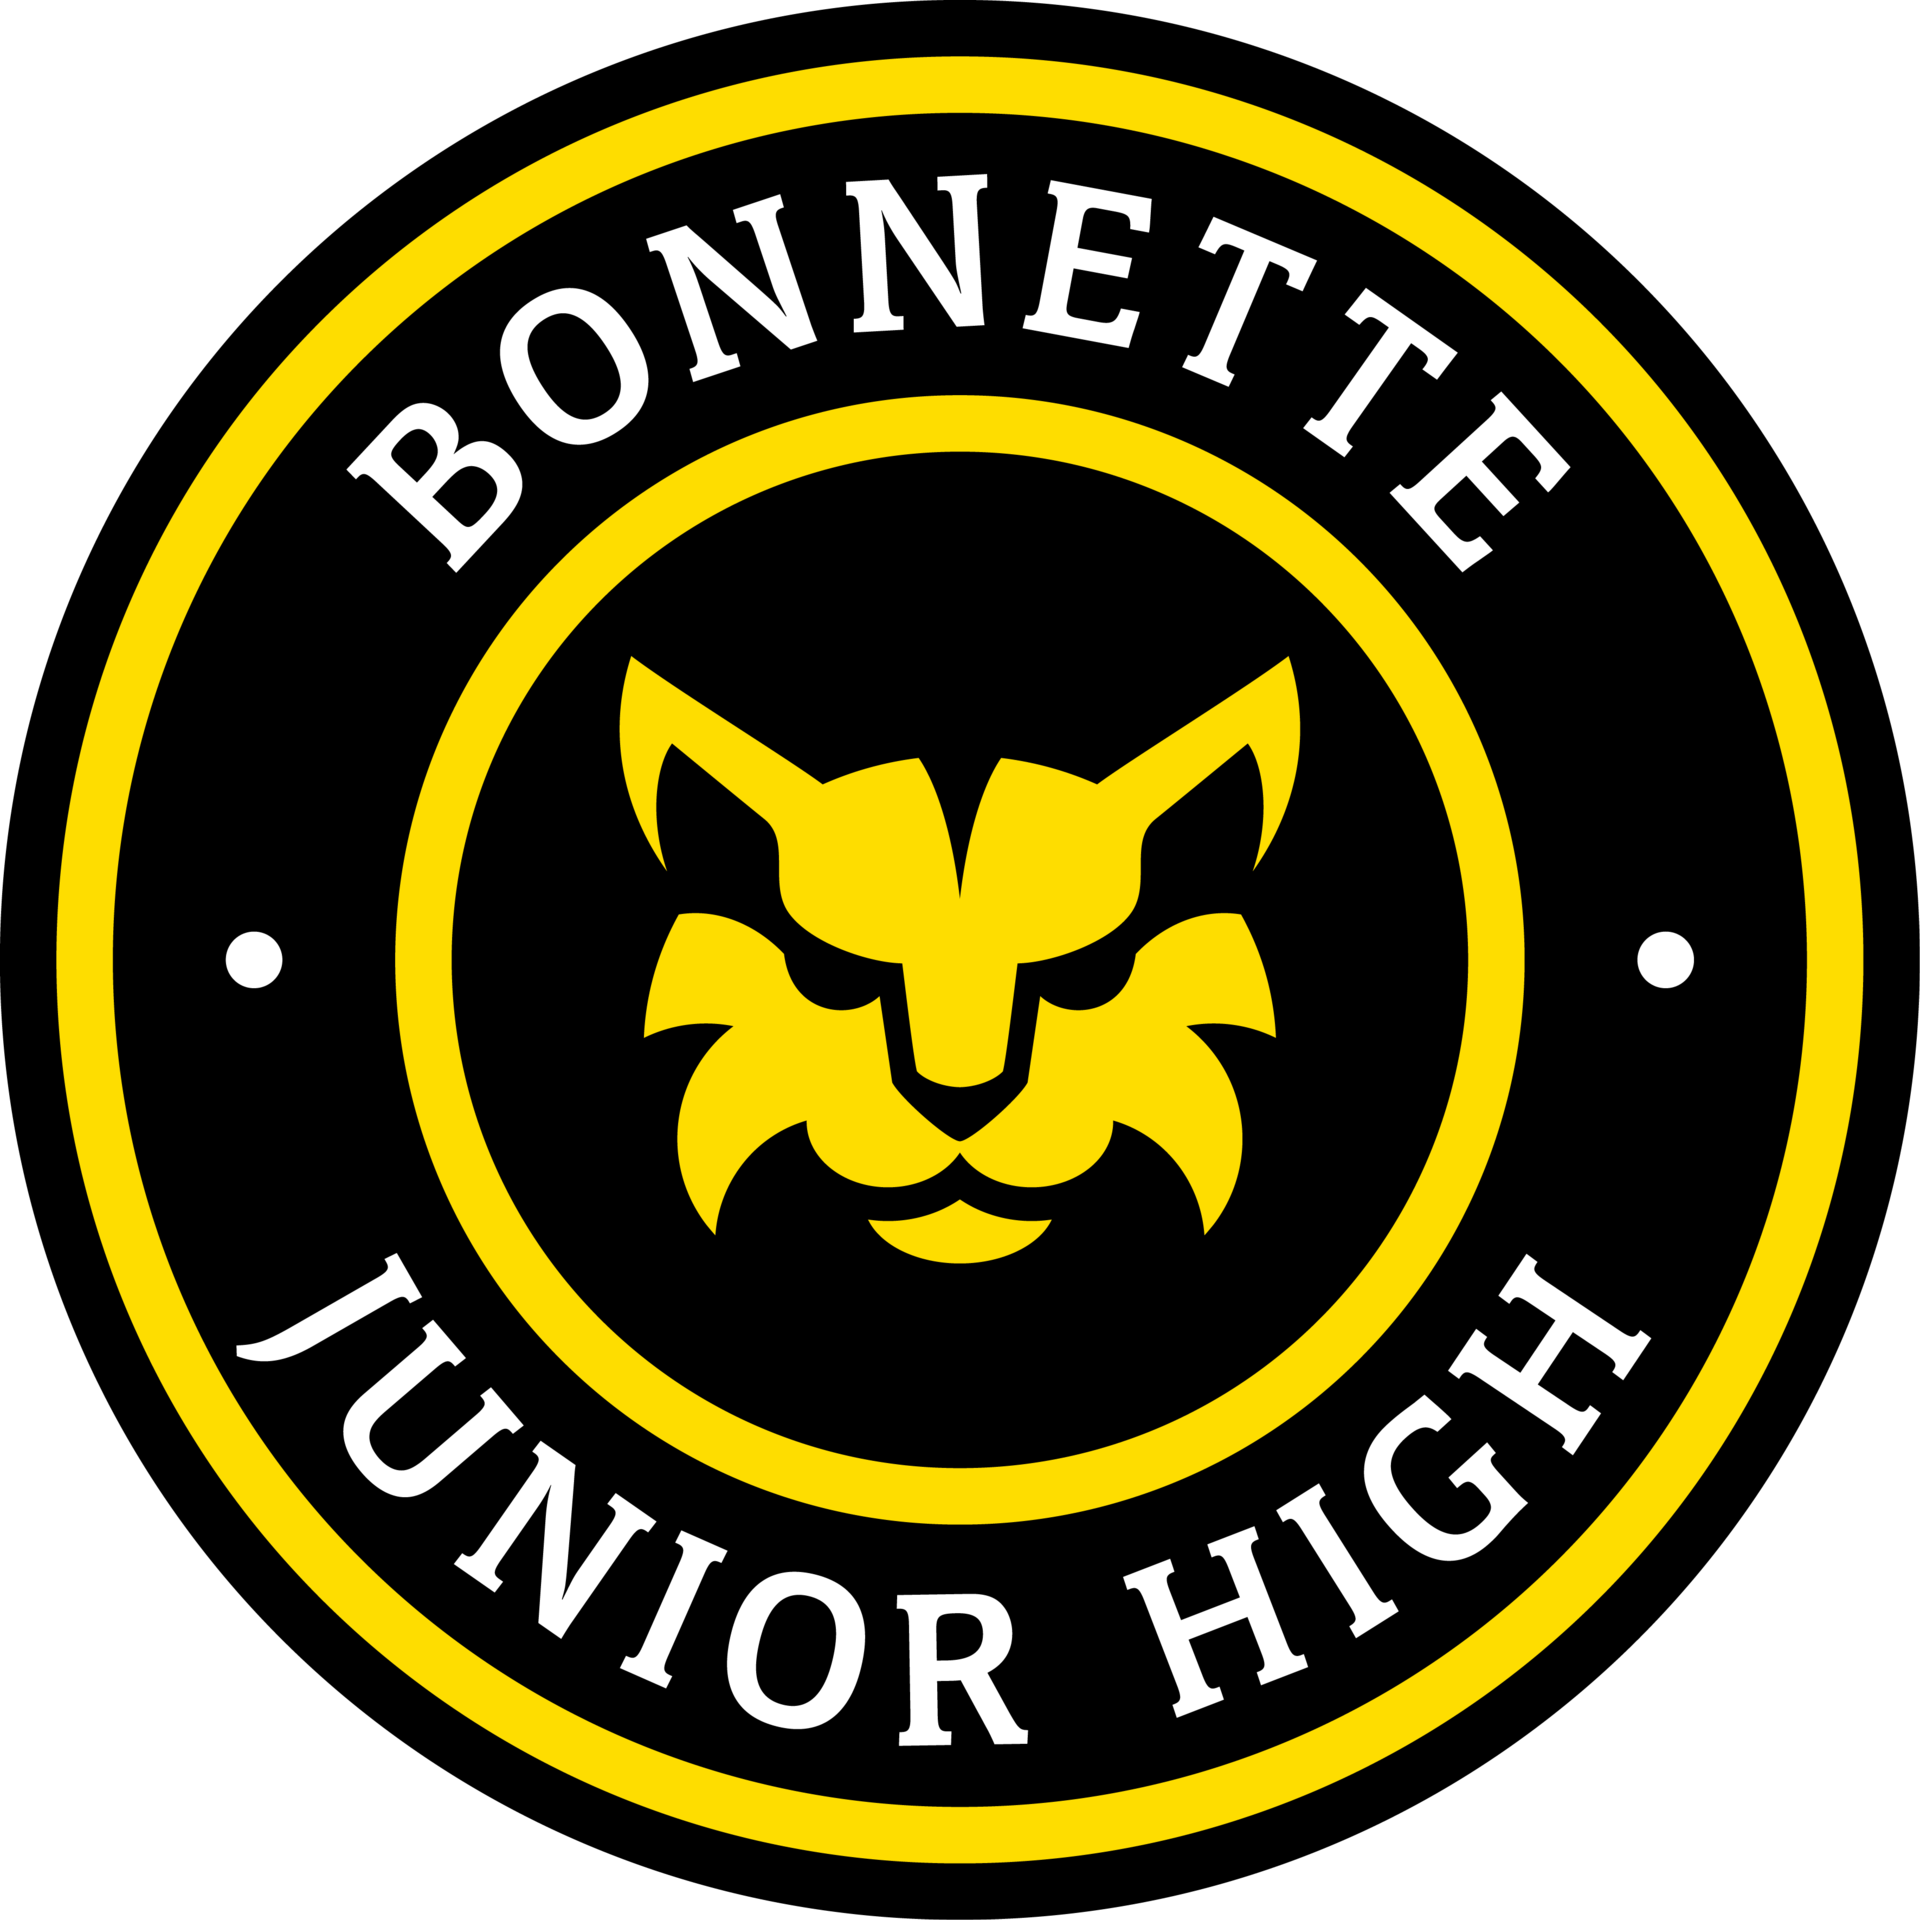 Bonnette Junior High Seal